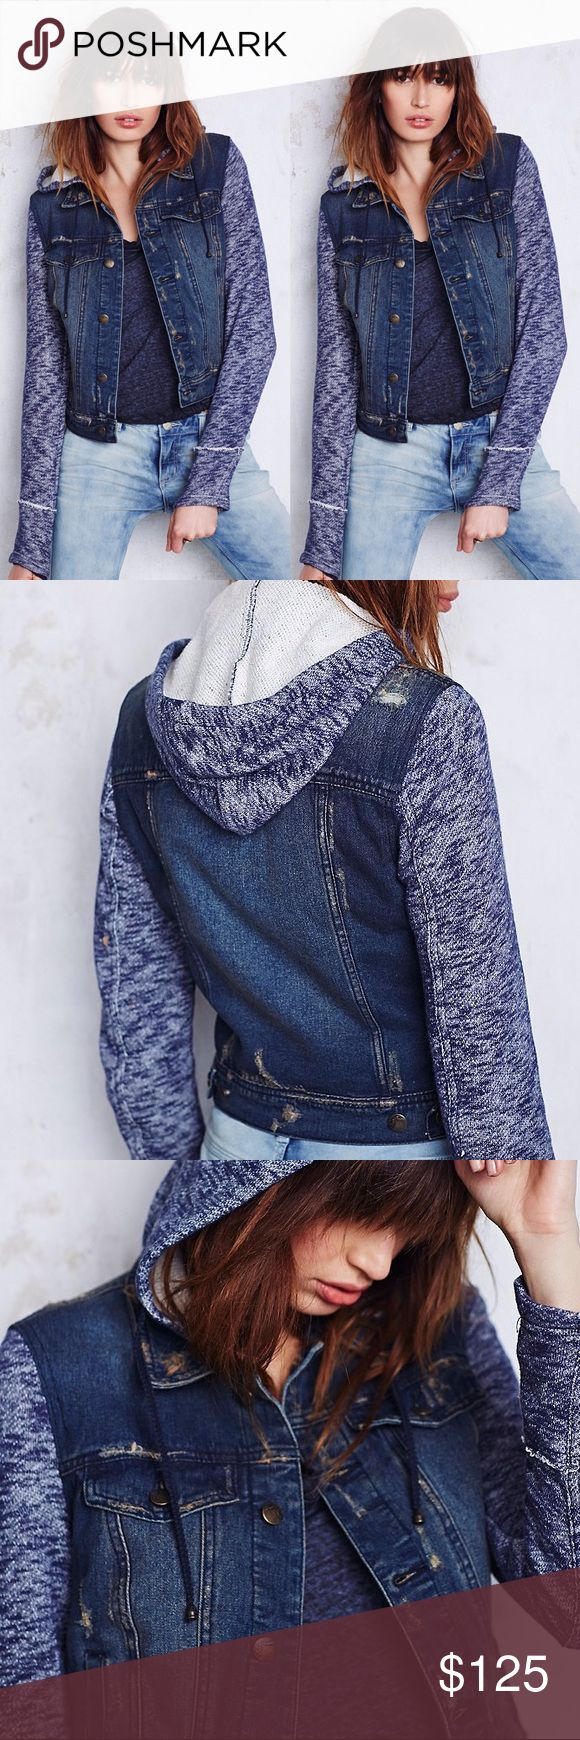 | Free People | Indigo Wash Hooded Jean Jacket Brand new with tags. Never been worn. Distressed look. Made from 100% cotton. Super comfortable. Retails for $168. No trades! Free People Jackets & Coats Jean Jackets